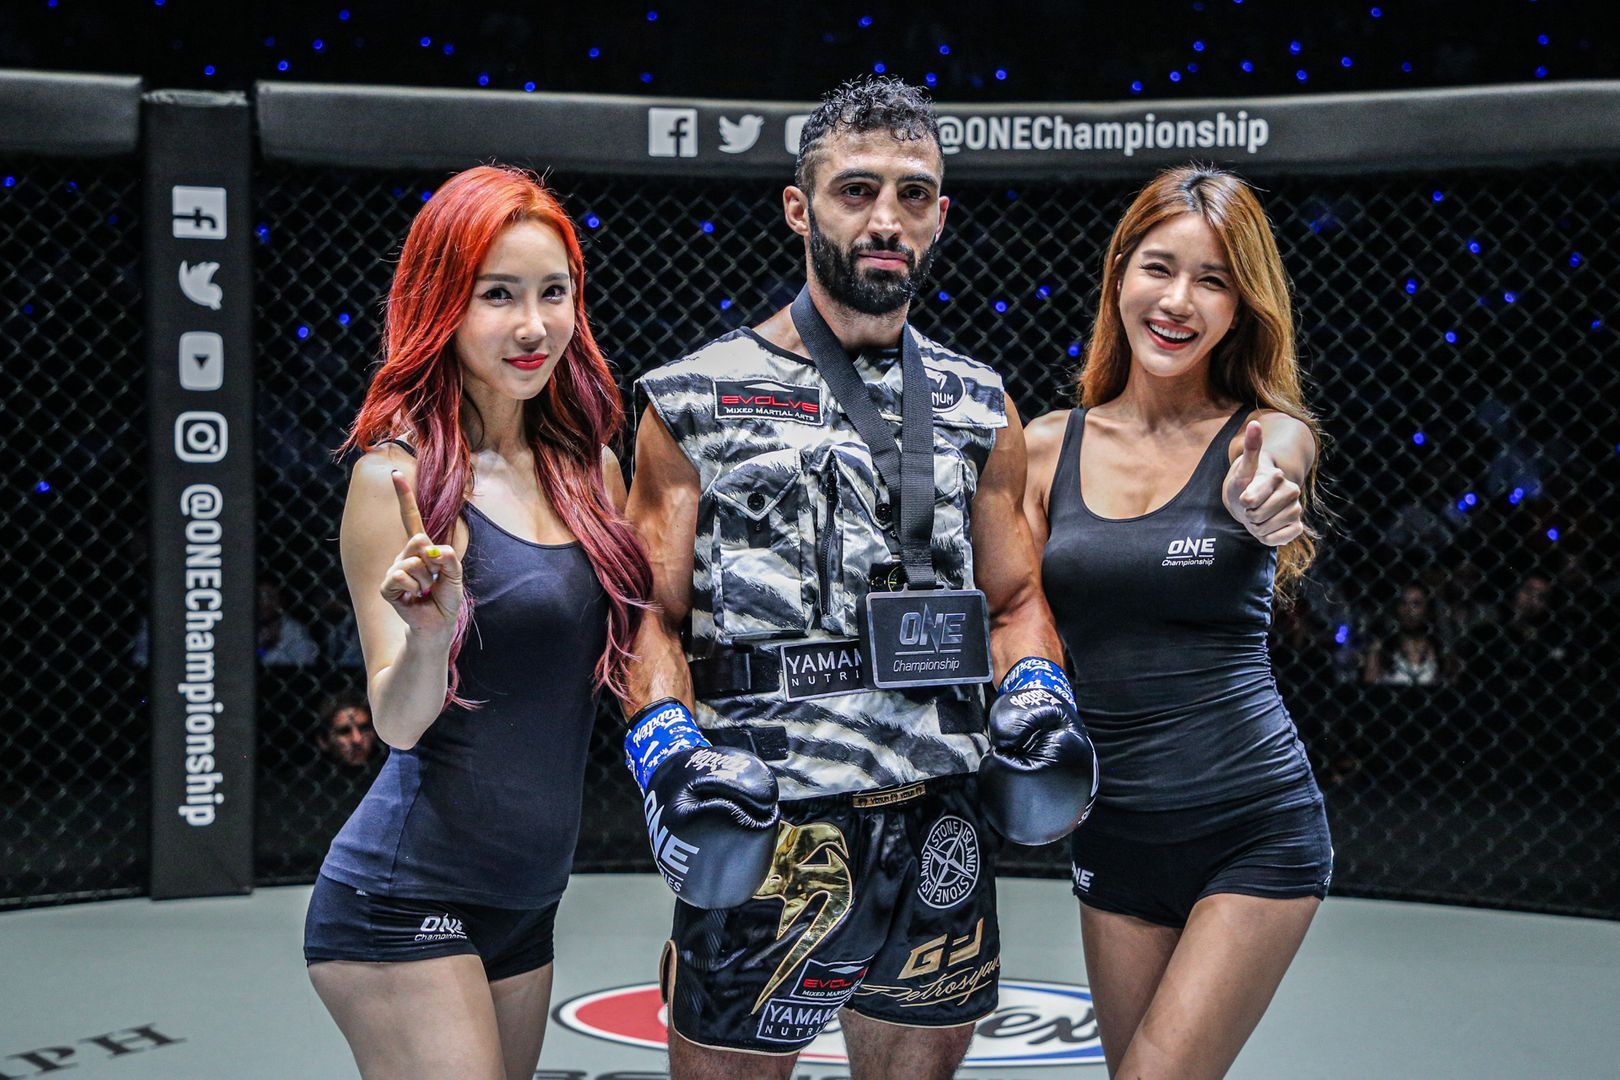 After knocking out Nattawut, Giorgio Petrosyan earns the winner's medal